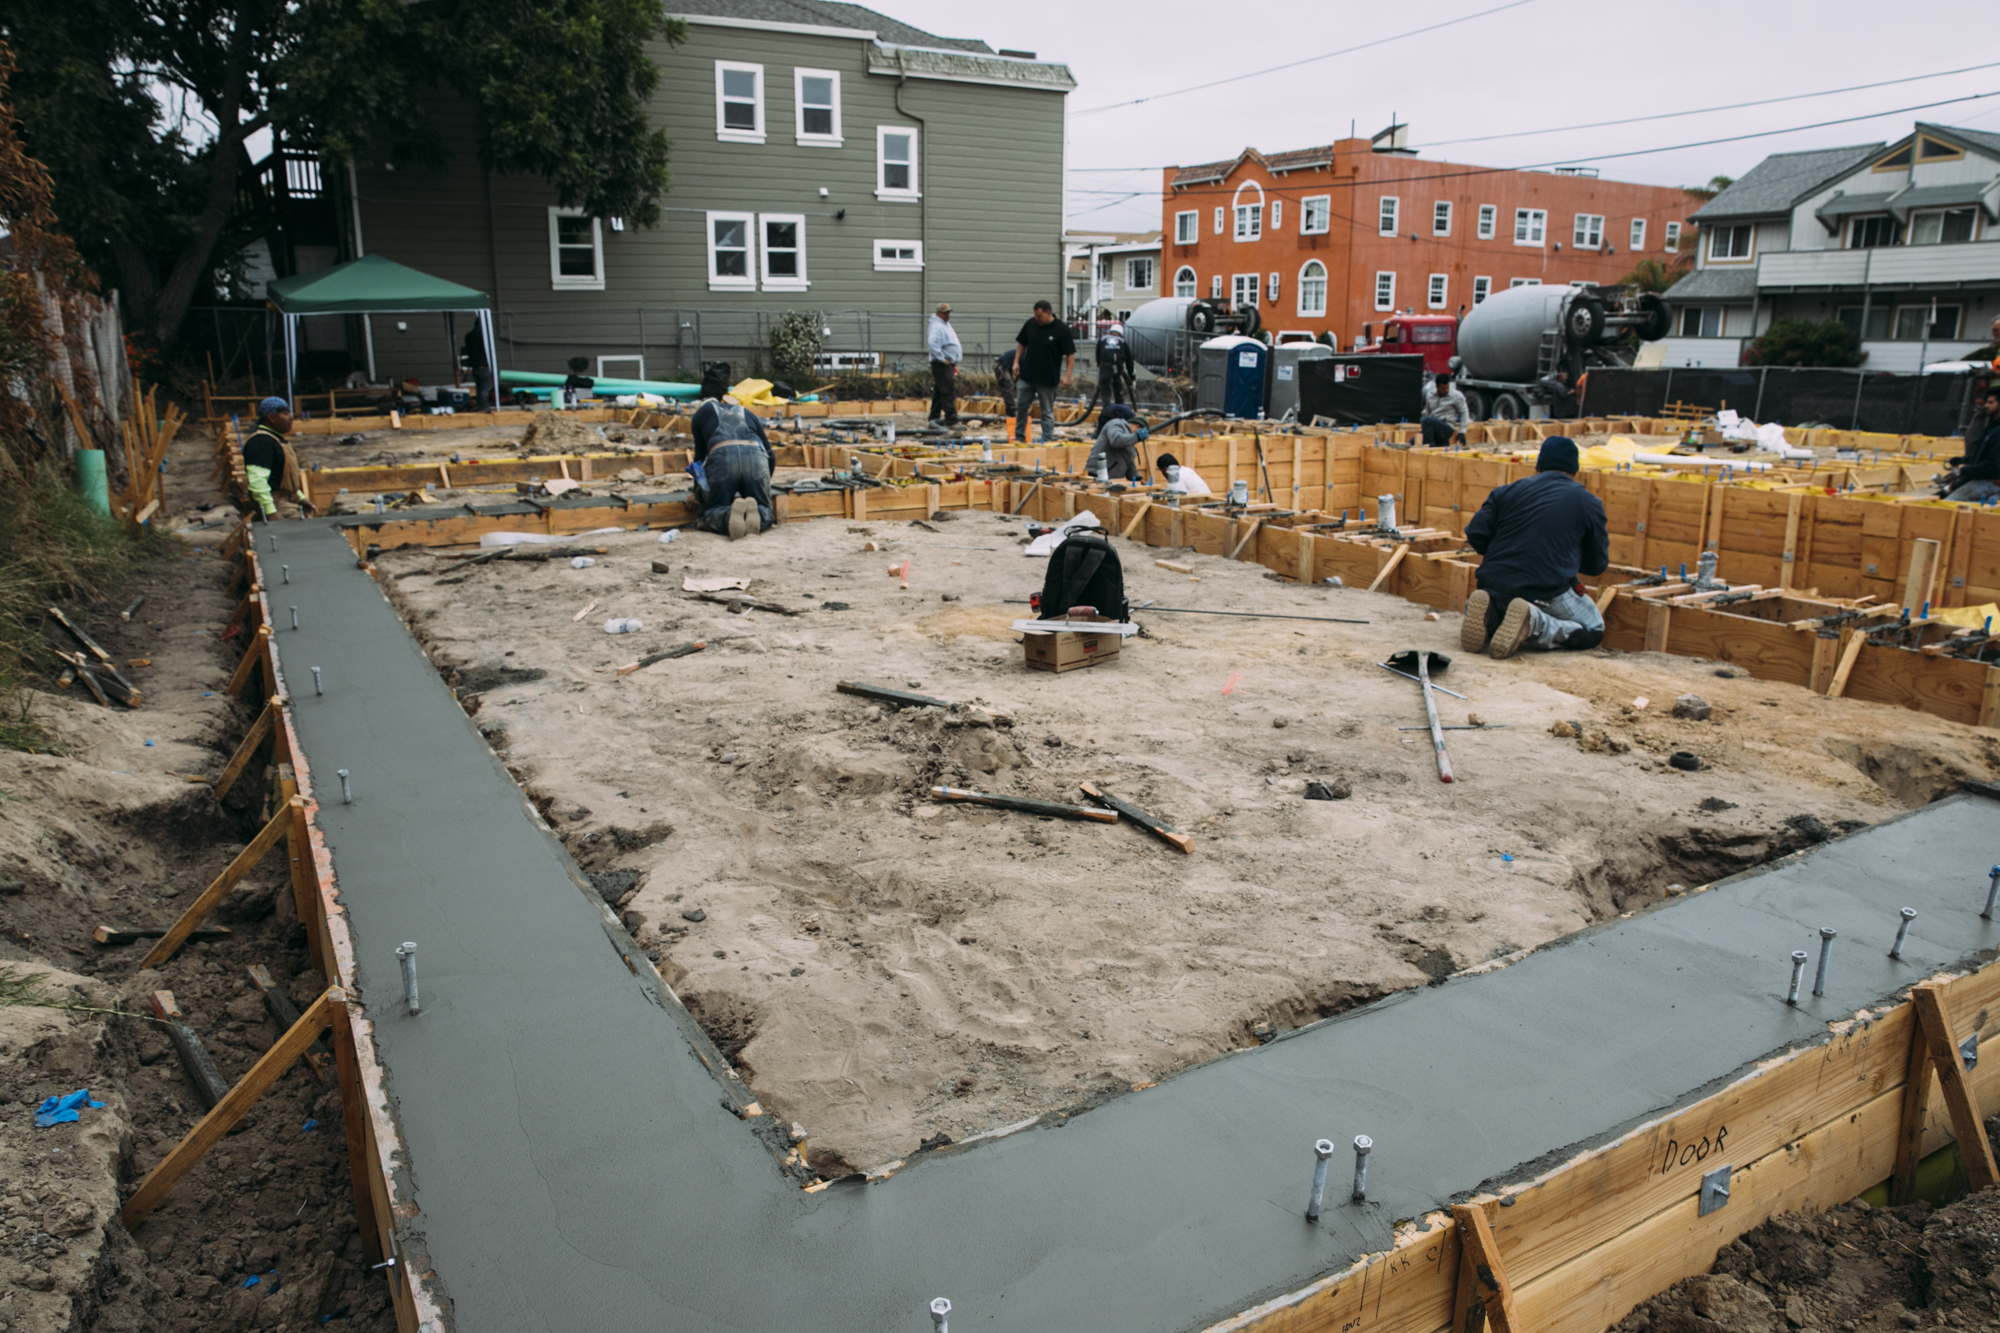 061019-00303_18thLinden_Construction.jpg